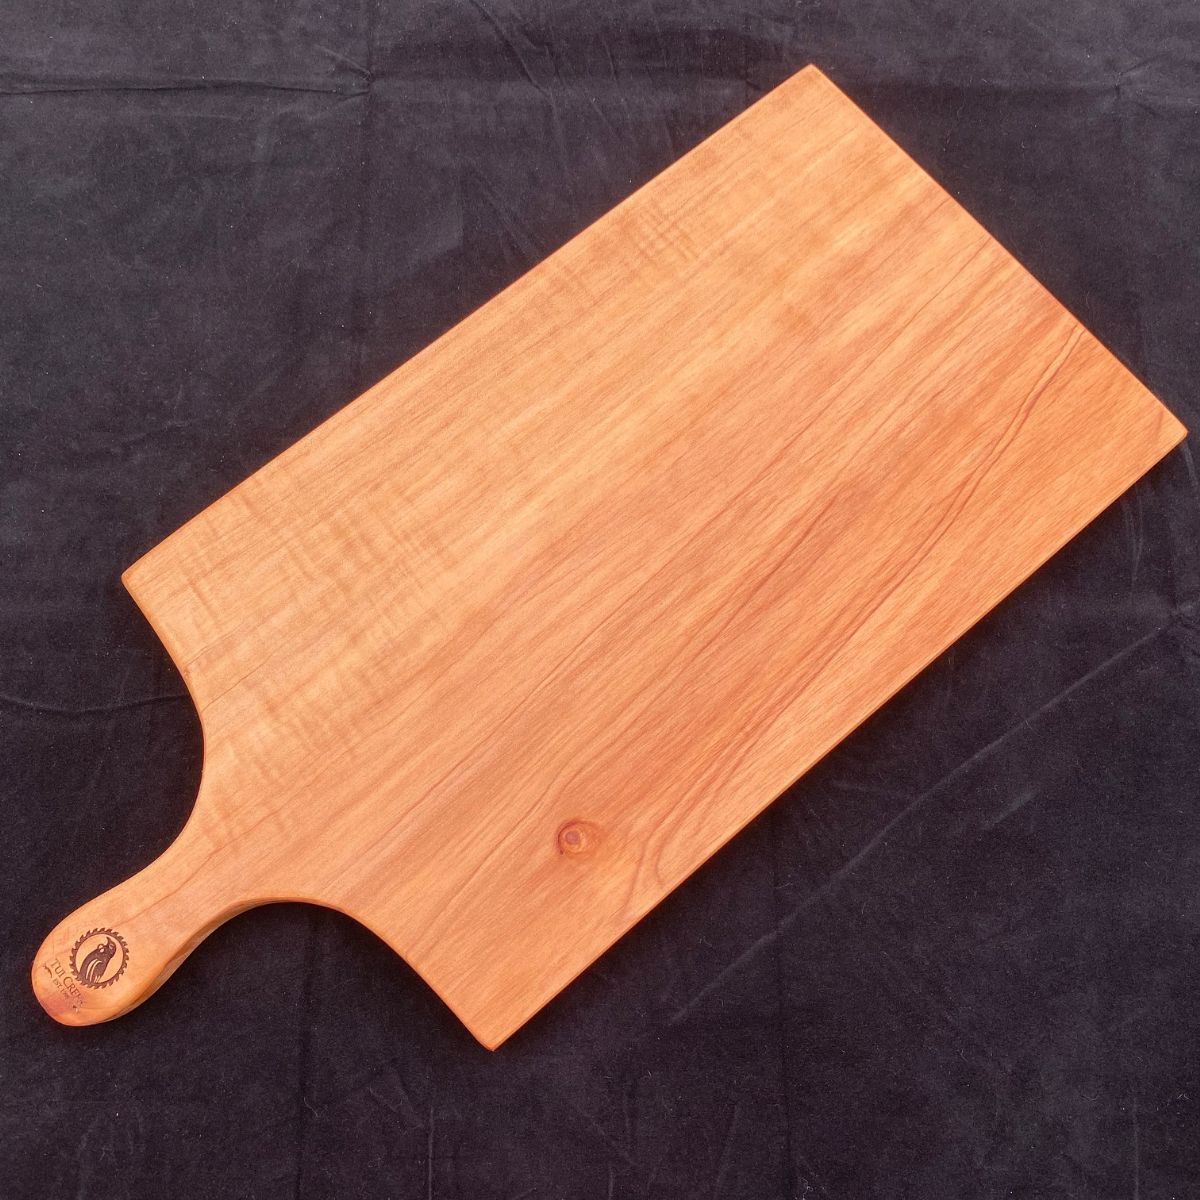 MACROCARPA CHEESE BOARD: Large